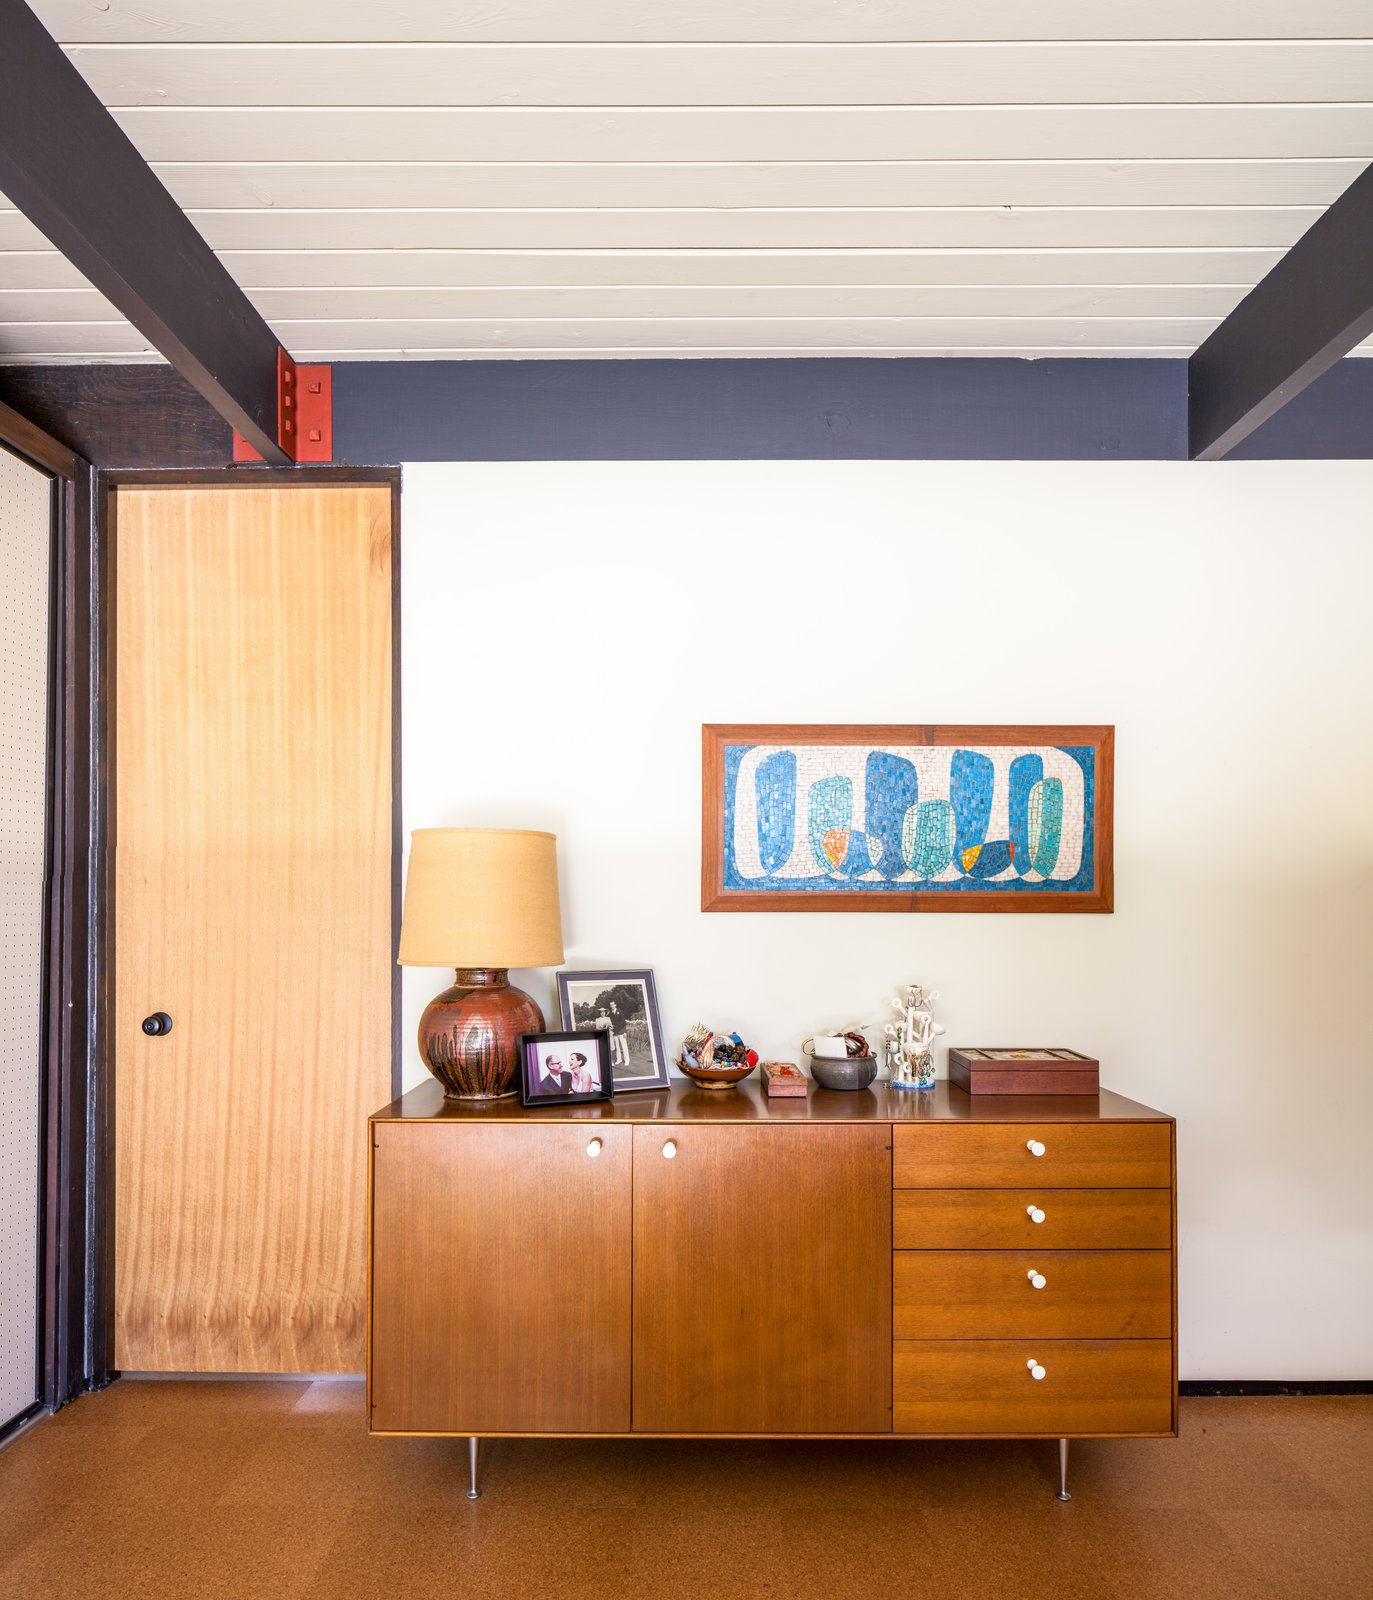 Doors, Interior, and Swing Door Type  Photo 4 of 10 in A Stunningly Restored Midcentury by Case Study Architect Craig Ellwood Asks $800K in San Diego